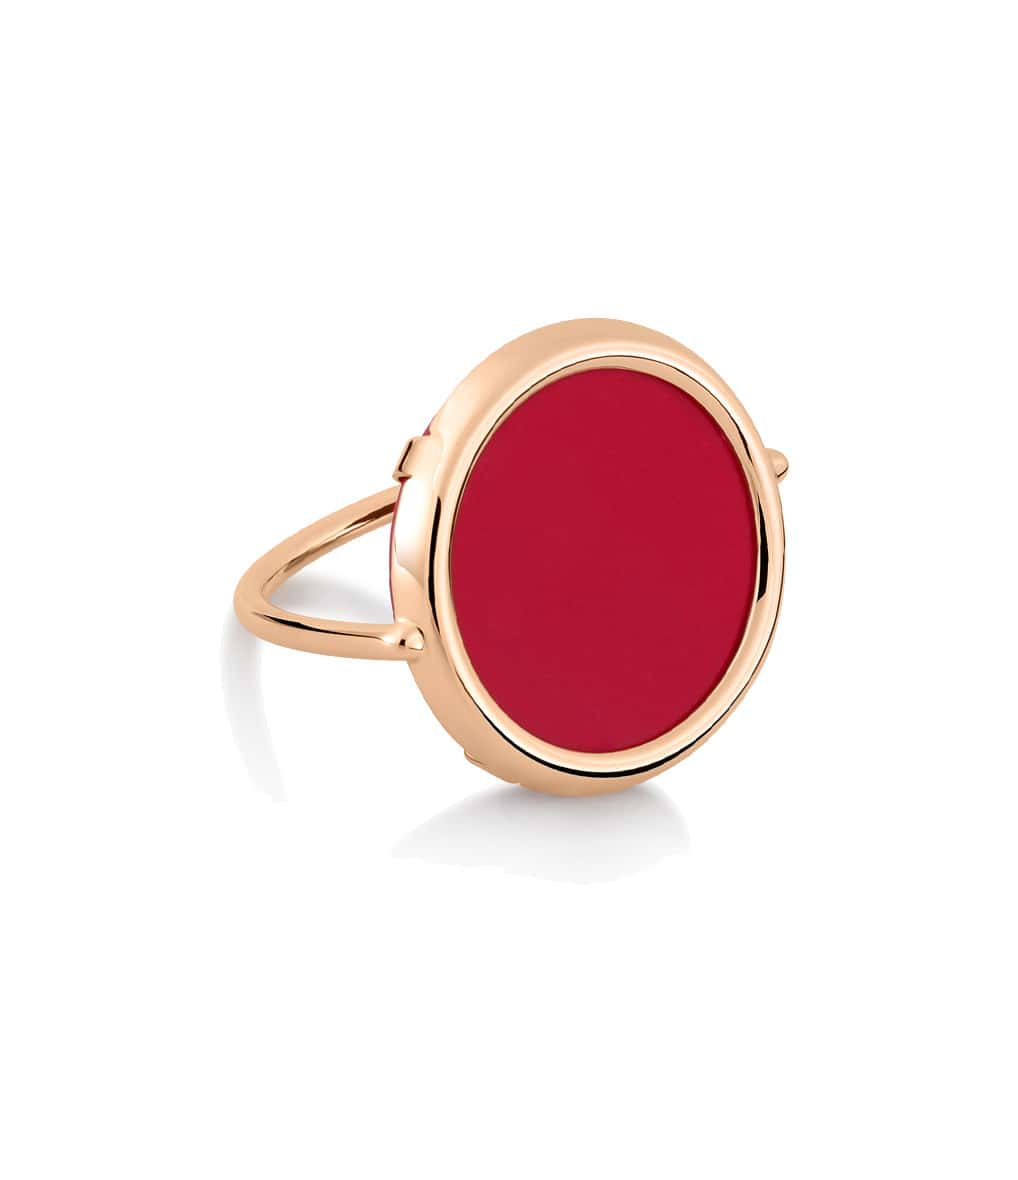 GINETTE_NY - Bague Maria Disc Corail